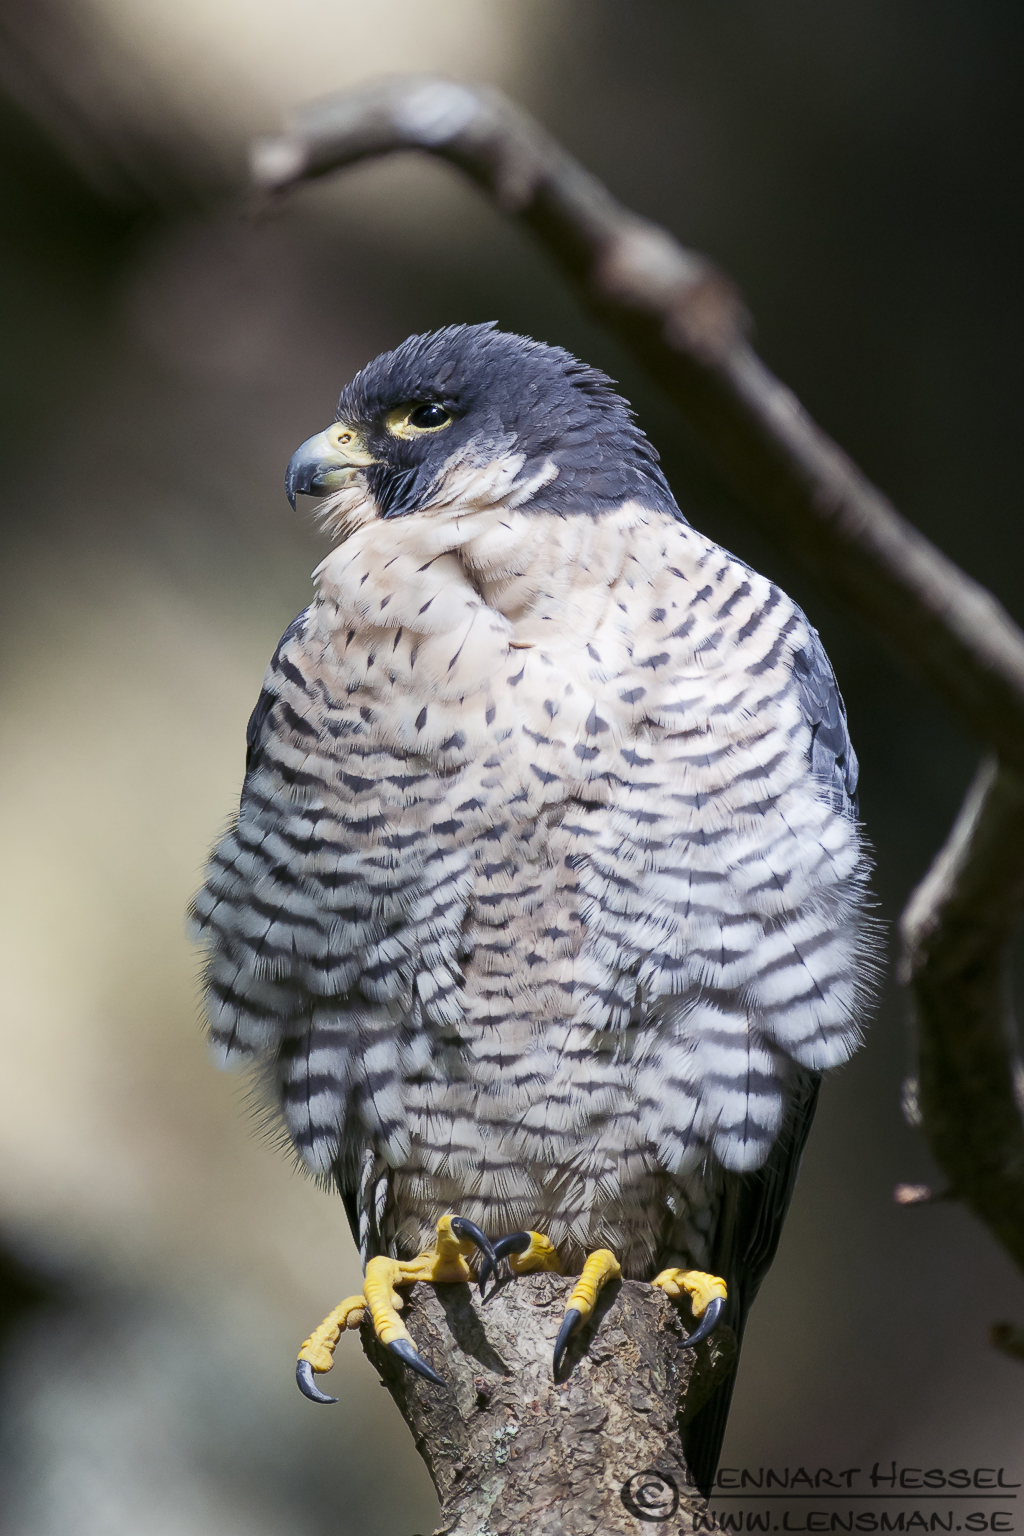 Peregrine Falcon, photo taken at Nordens Ark